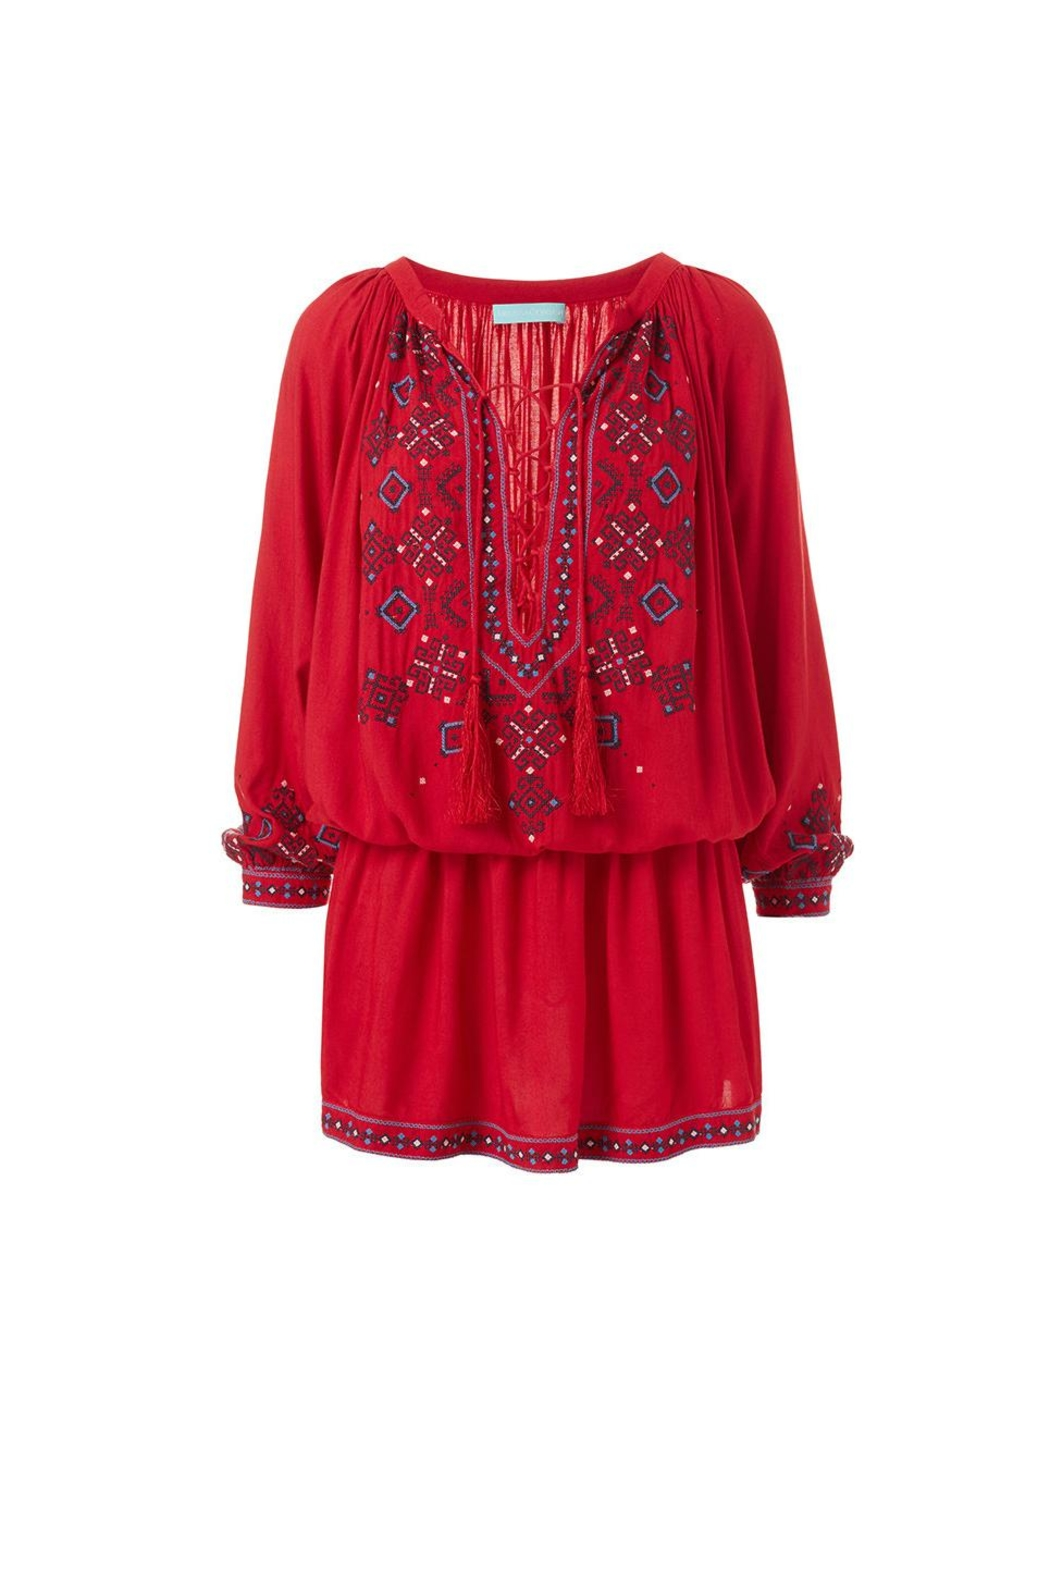 a9403b81370 Melissa Odabash Nadja Red Dress from Miami by Neptunes — Shoptiques